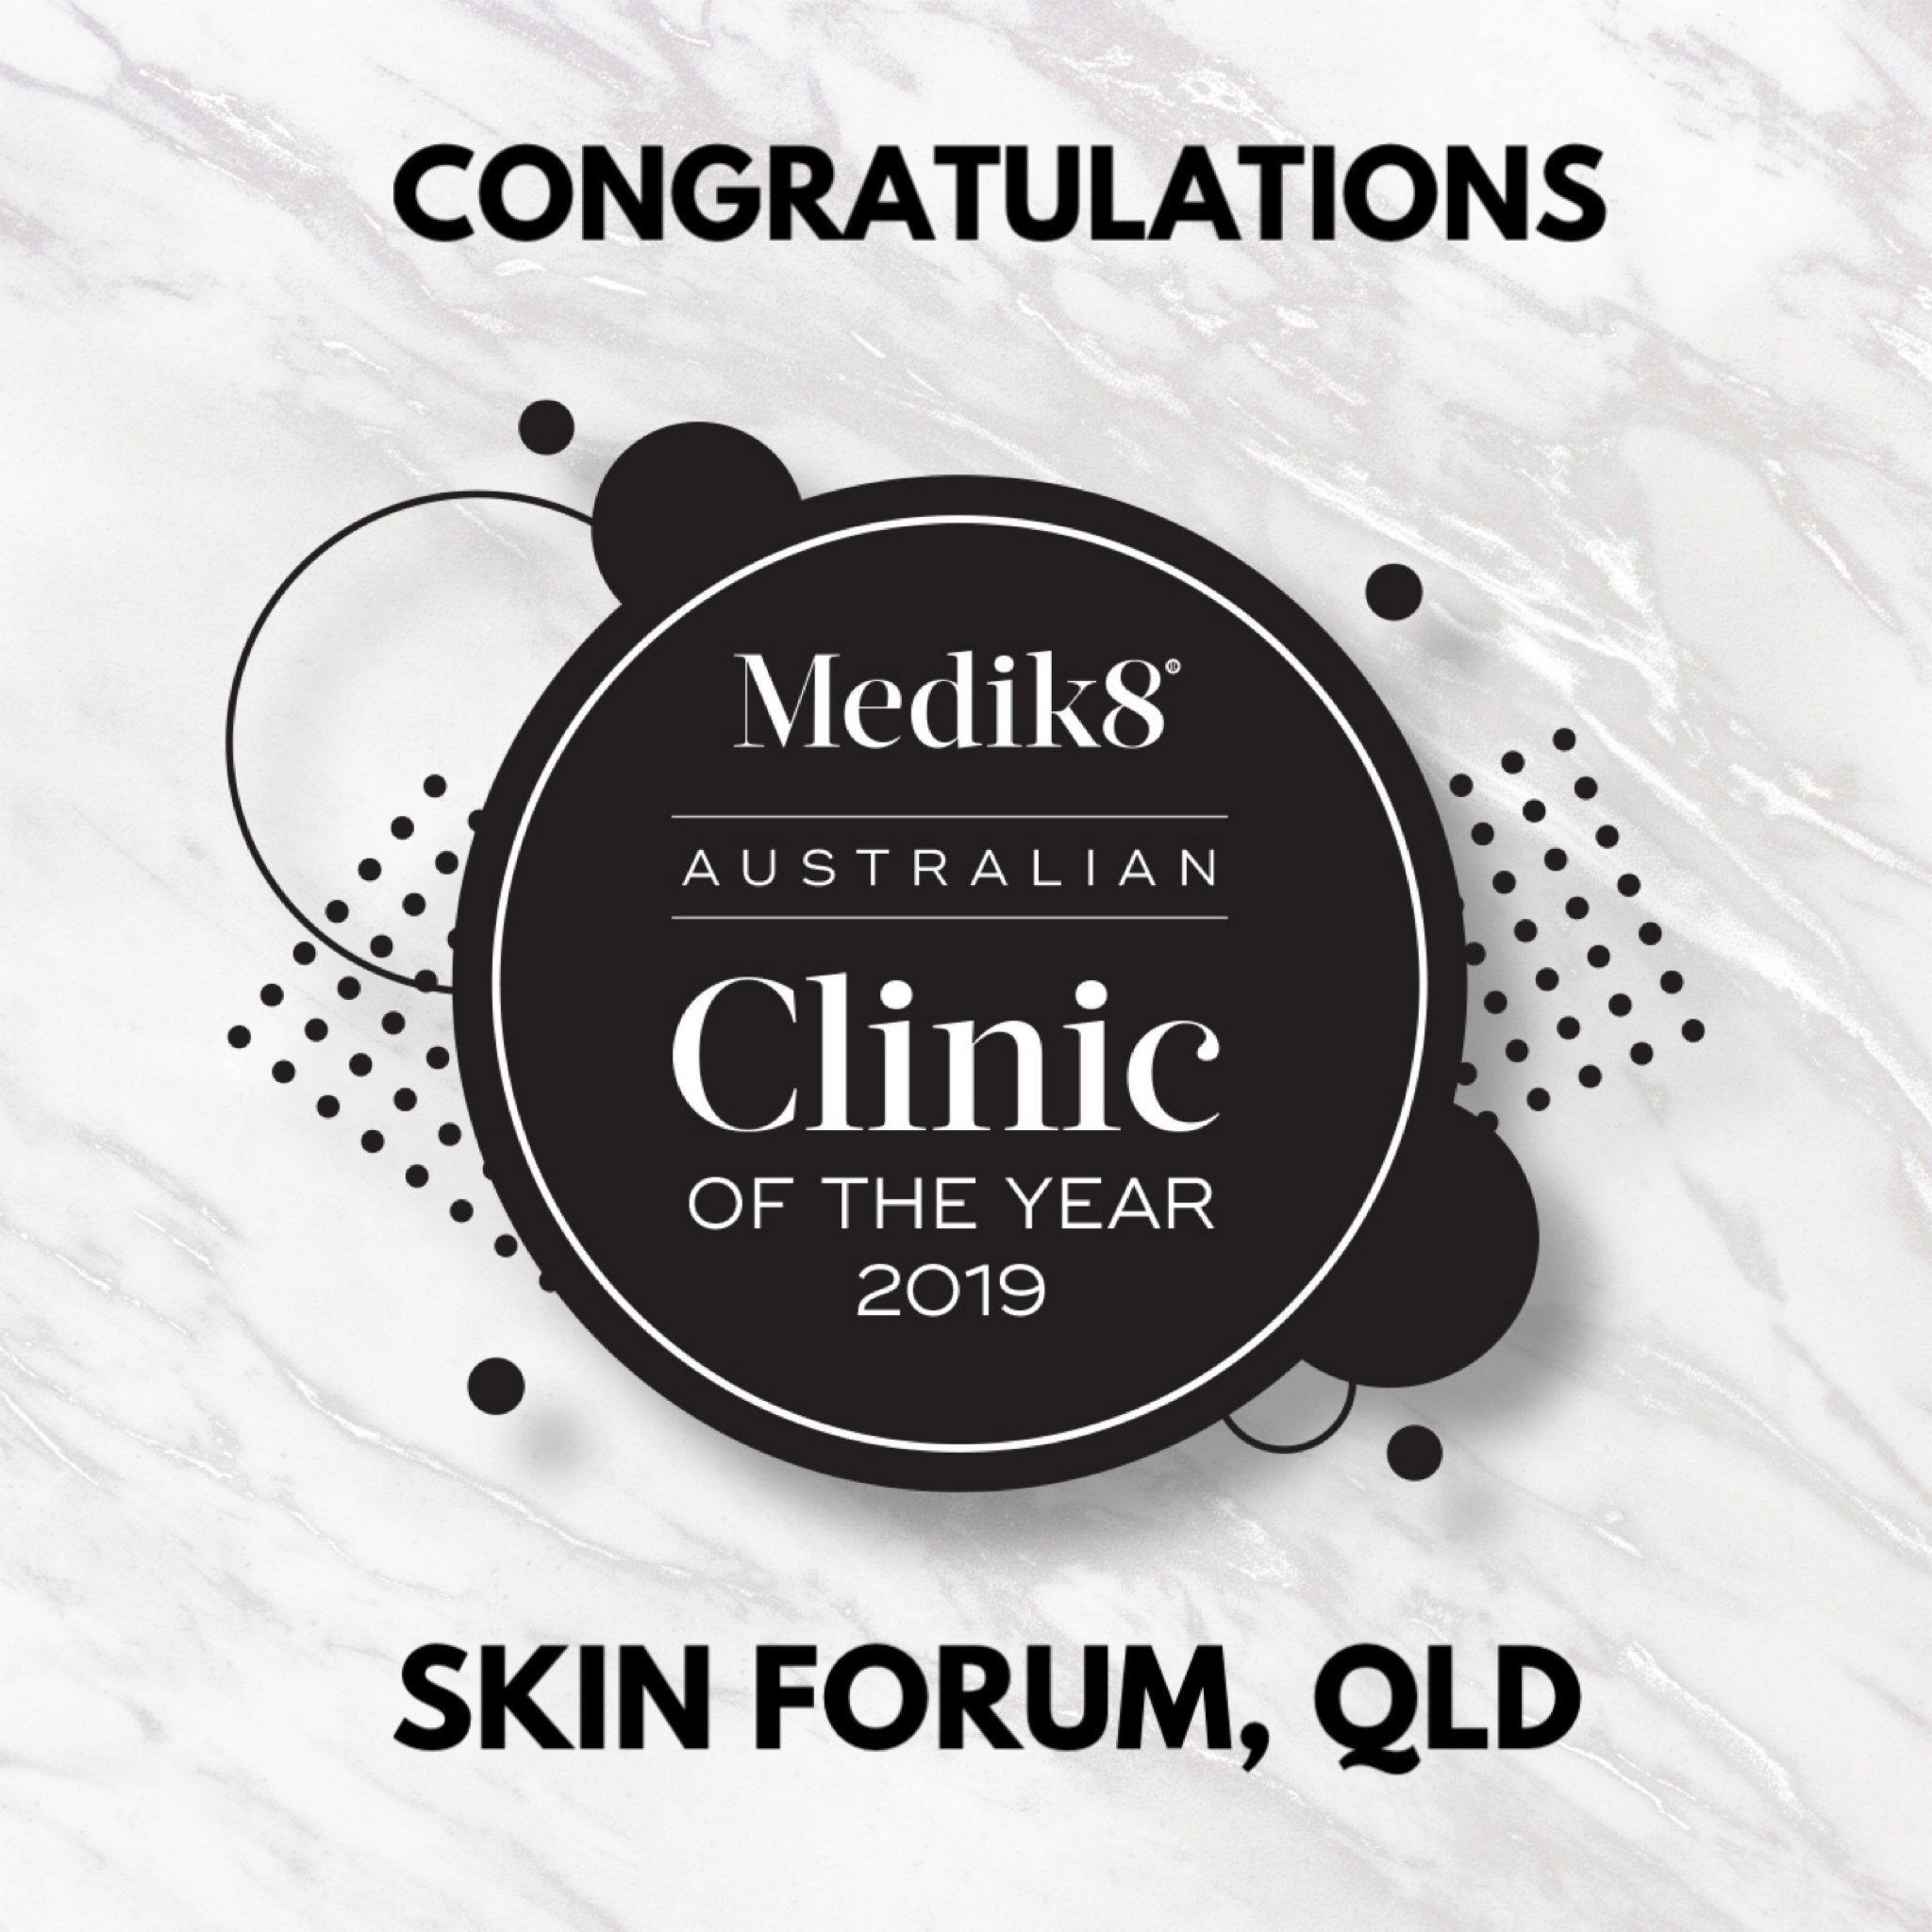 A big congratulations to all the Medik8 Clinic of the Year 2019 winners with the...